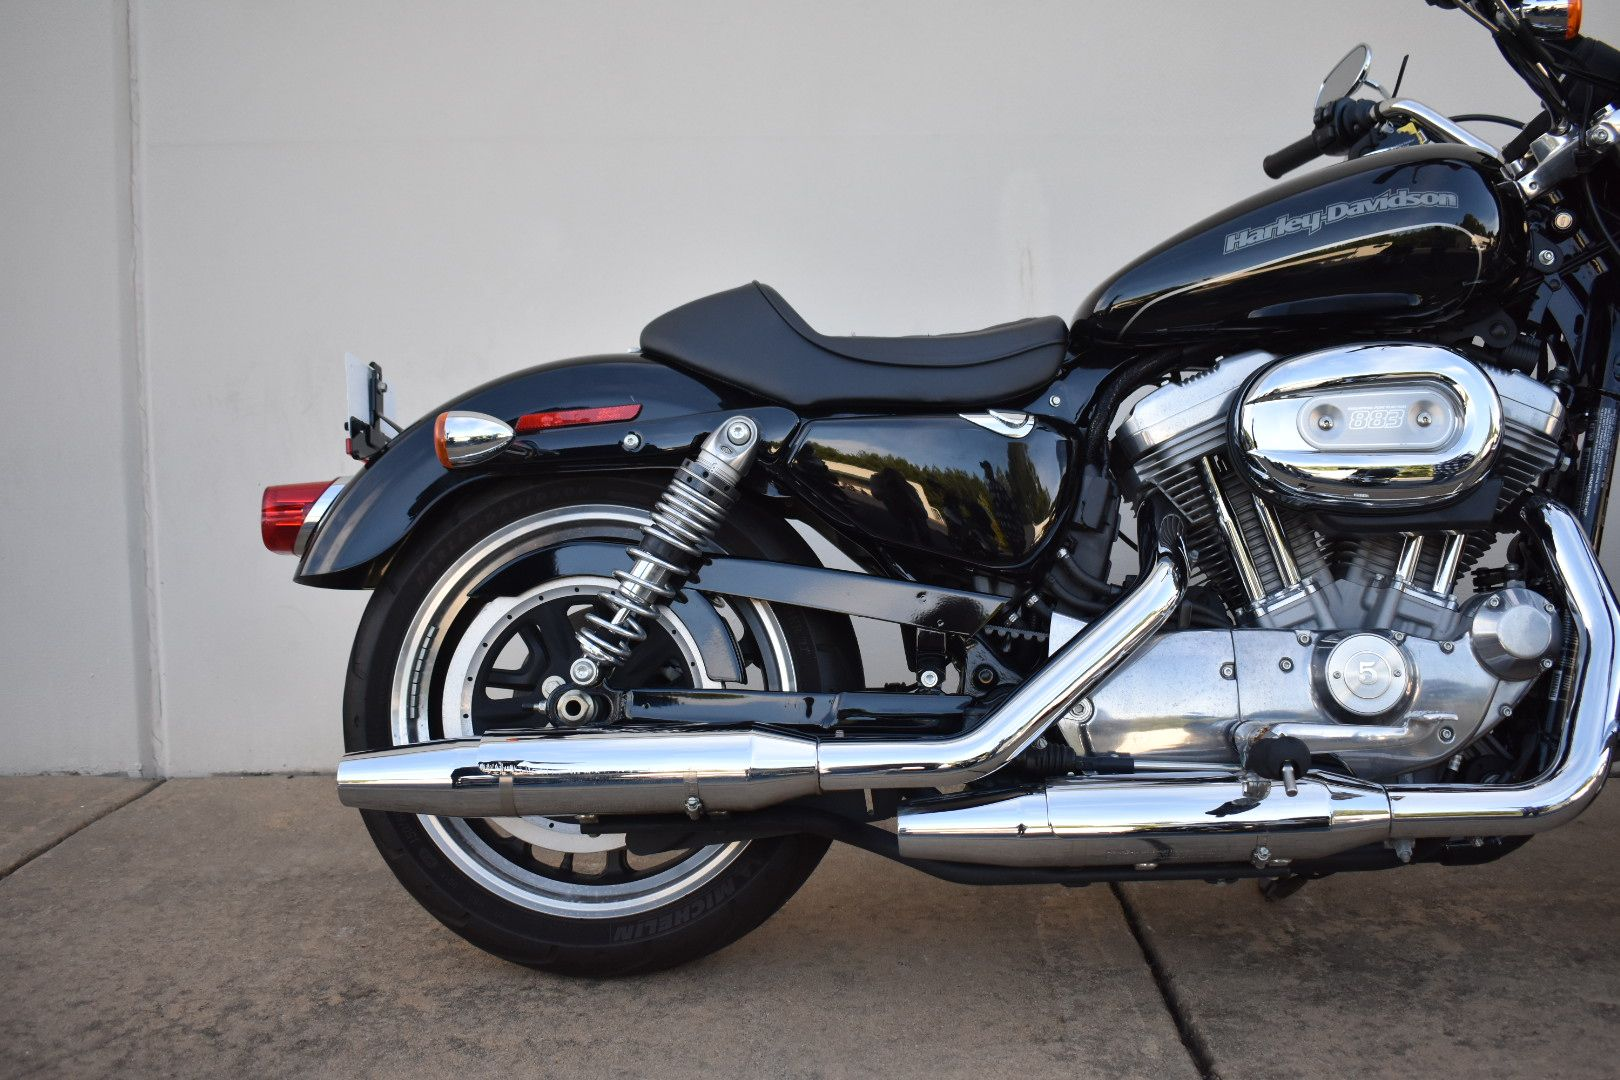 Pre-Owned 2017 Harley-Davidson SuperLow XL883L